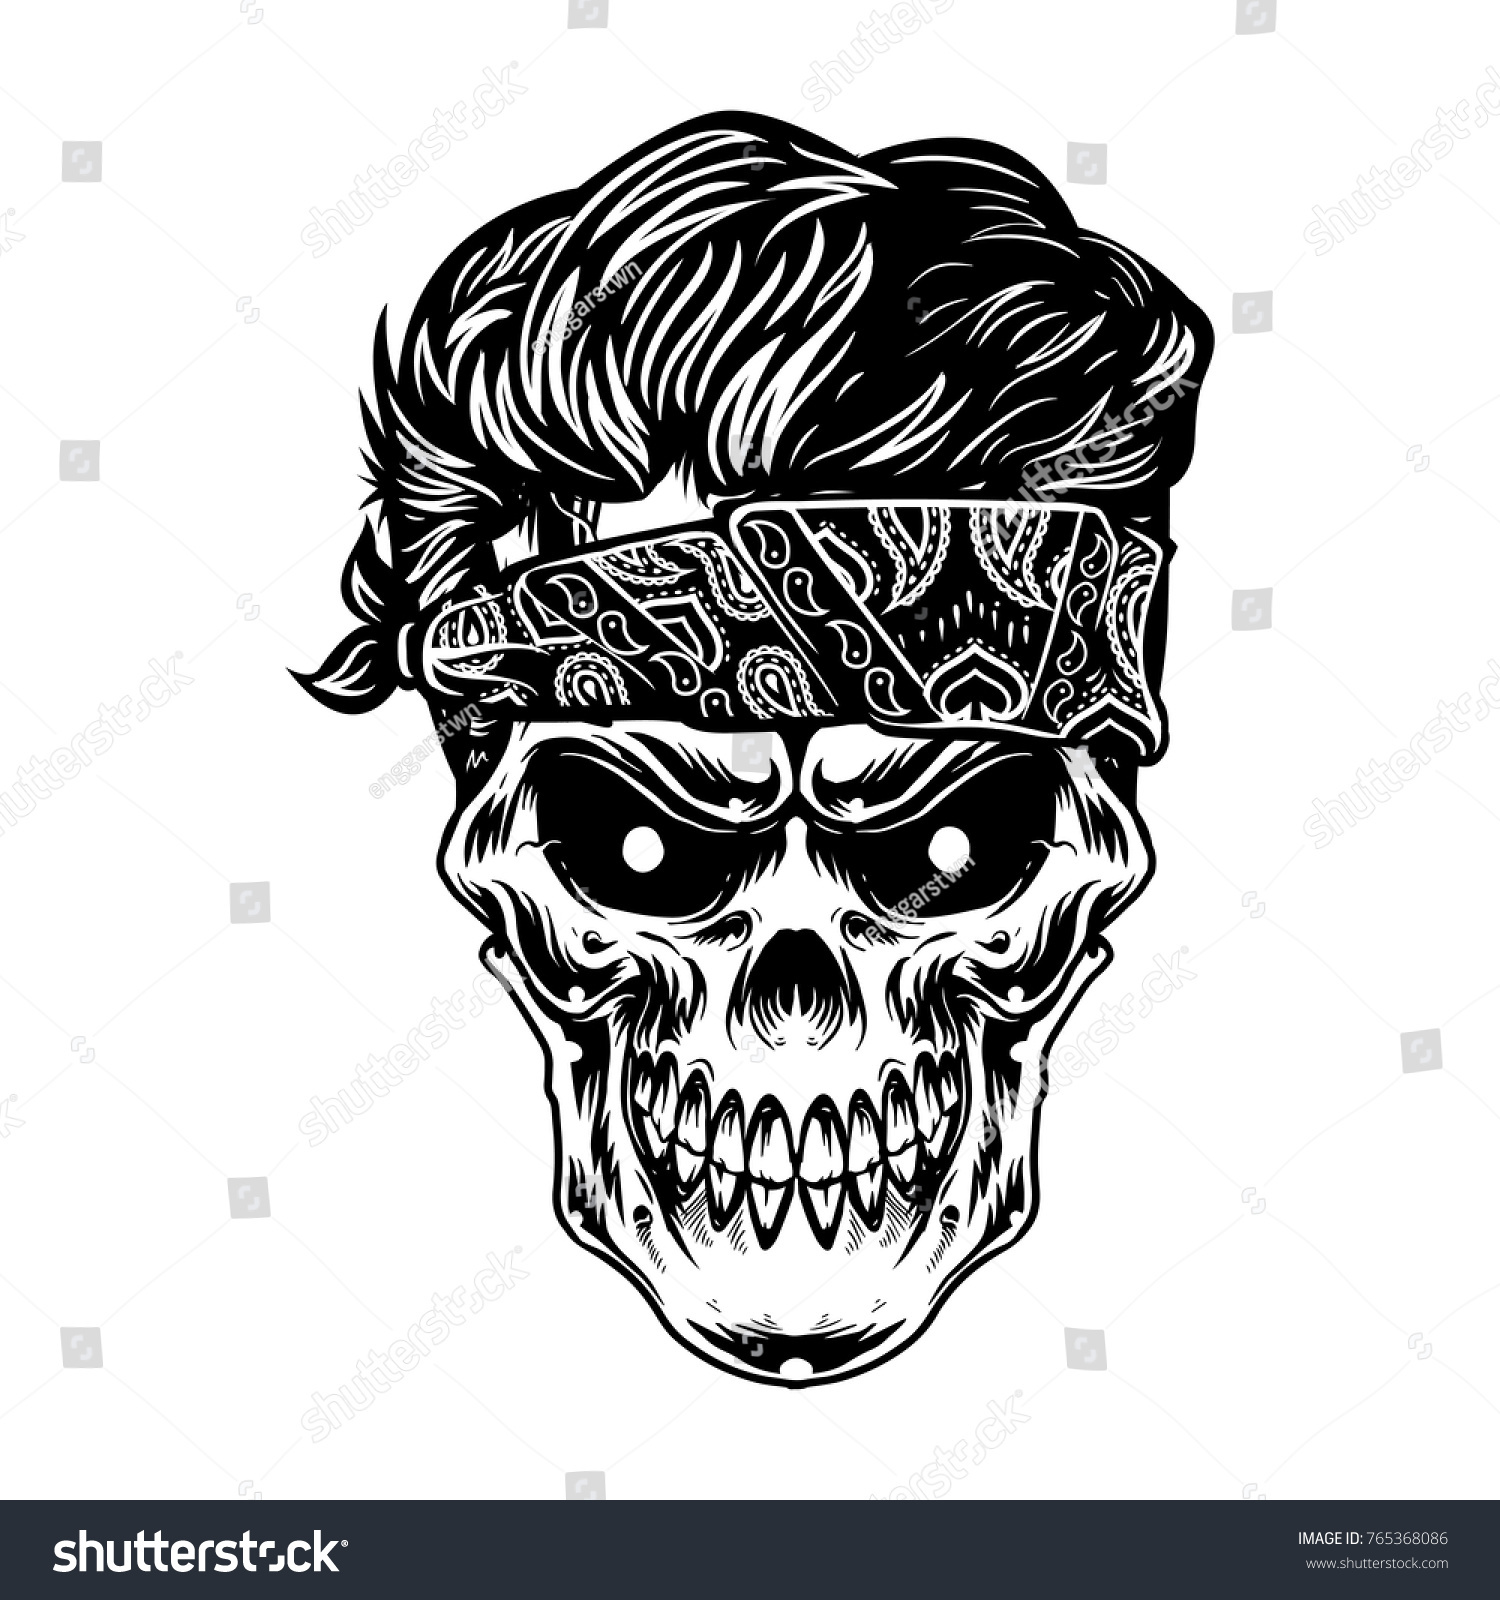 The skull head wearing bandana and cool black hairstyle for t shirt design artwork art